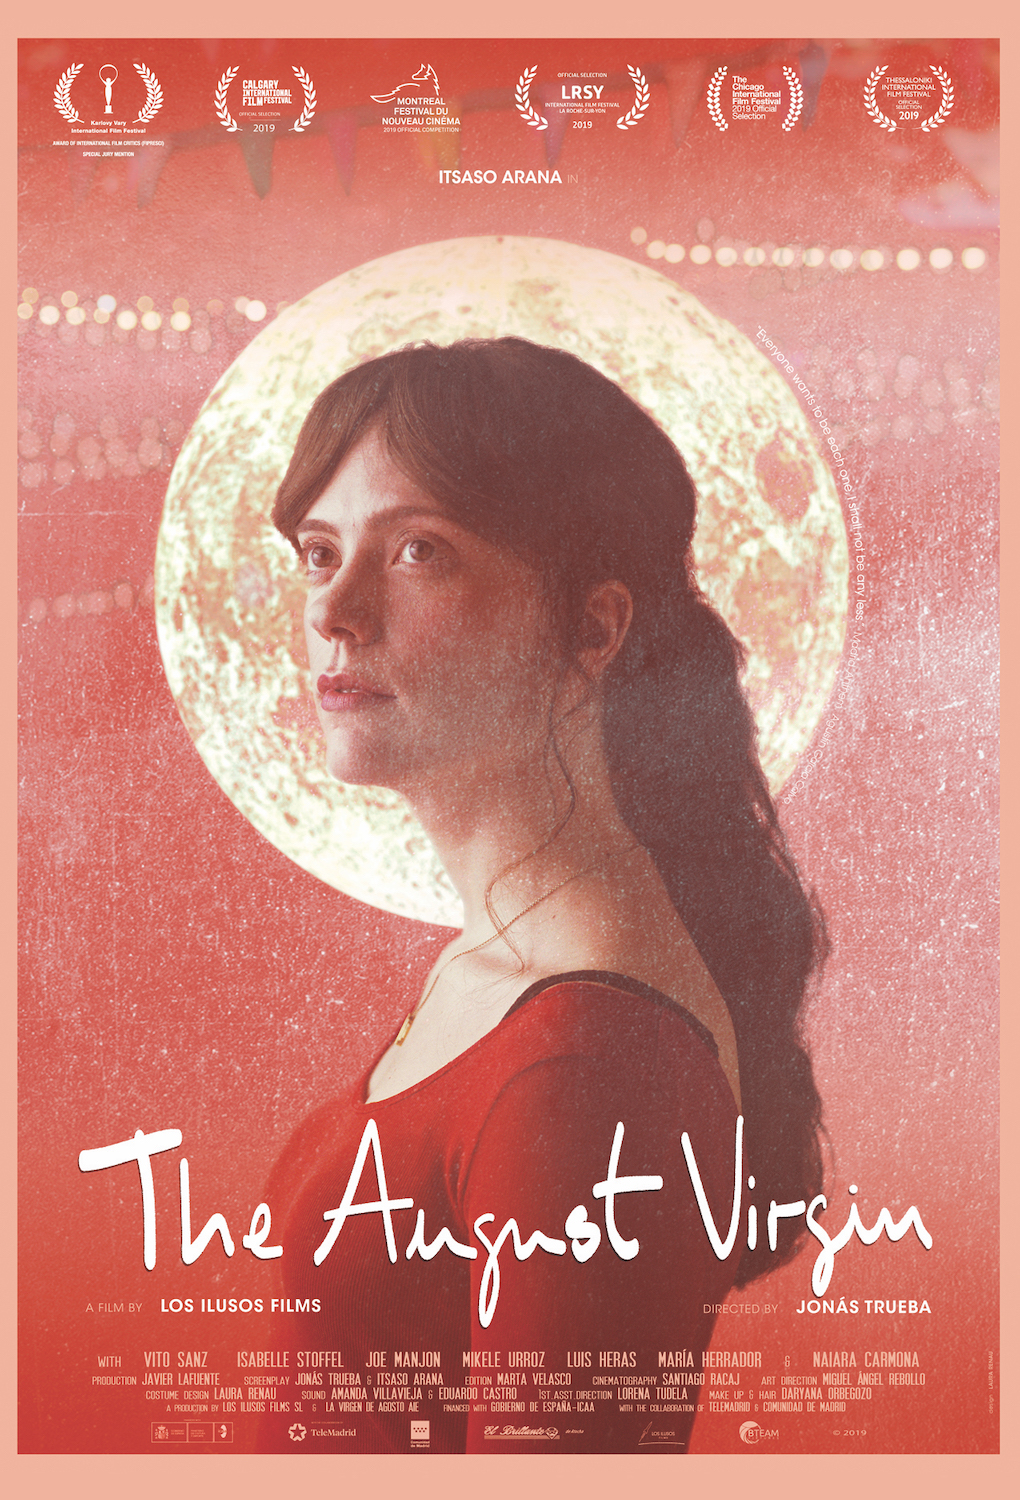 THE AUGUST VIRGIN